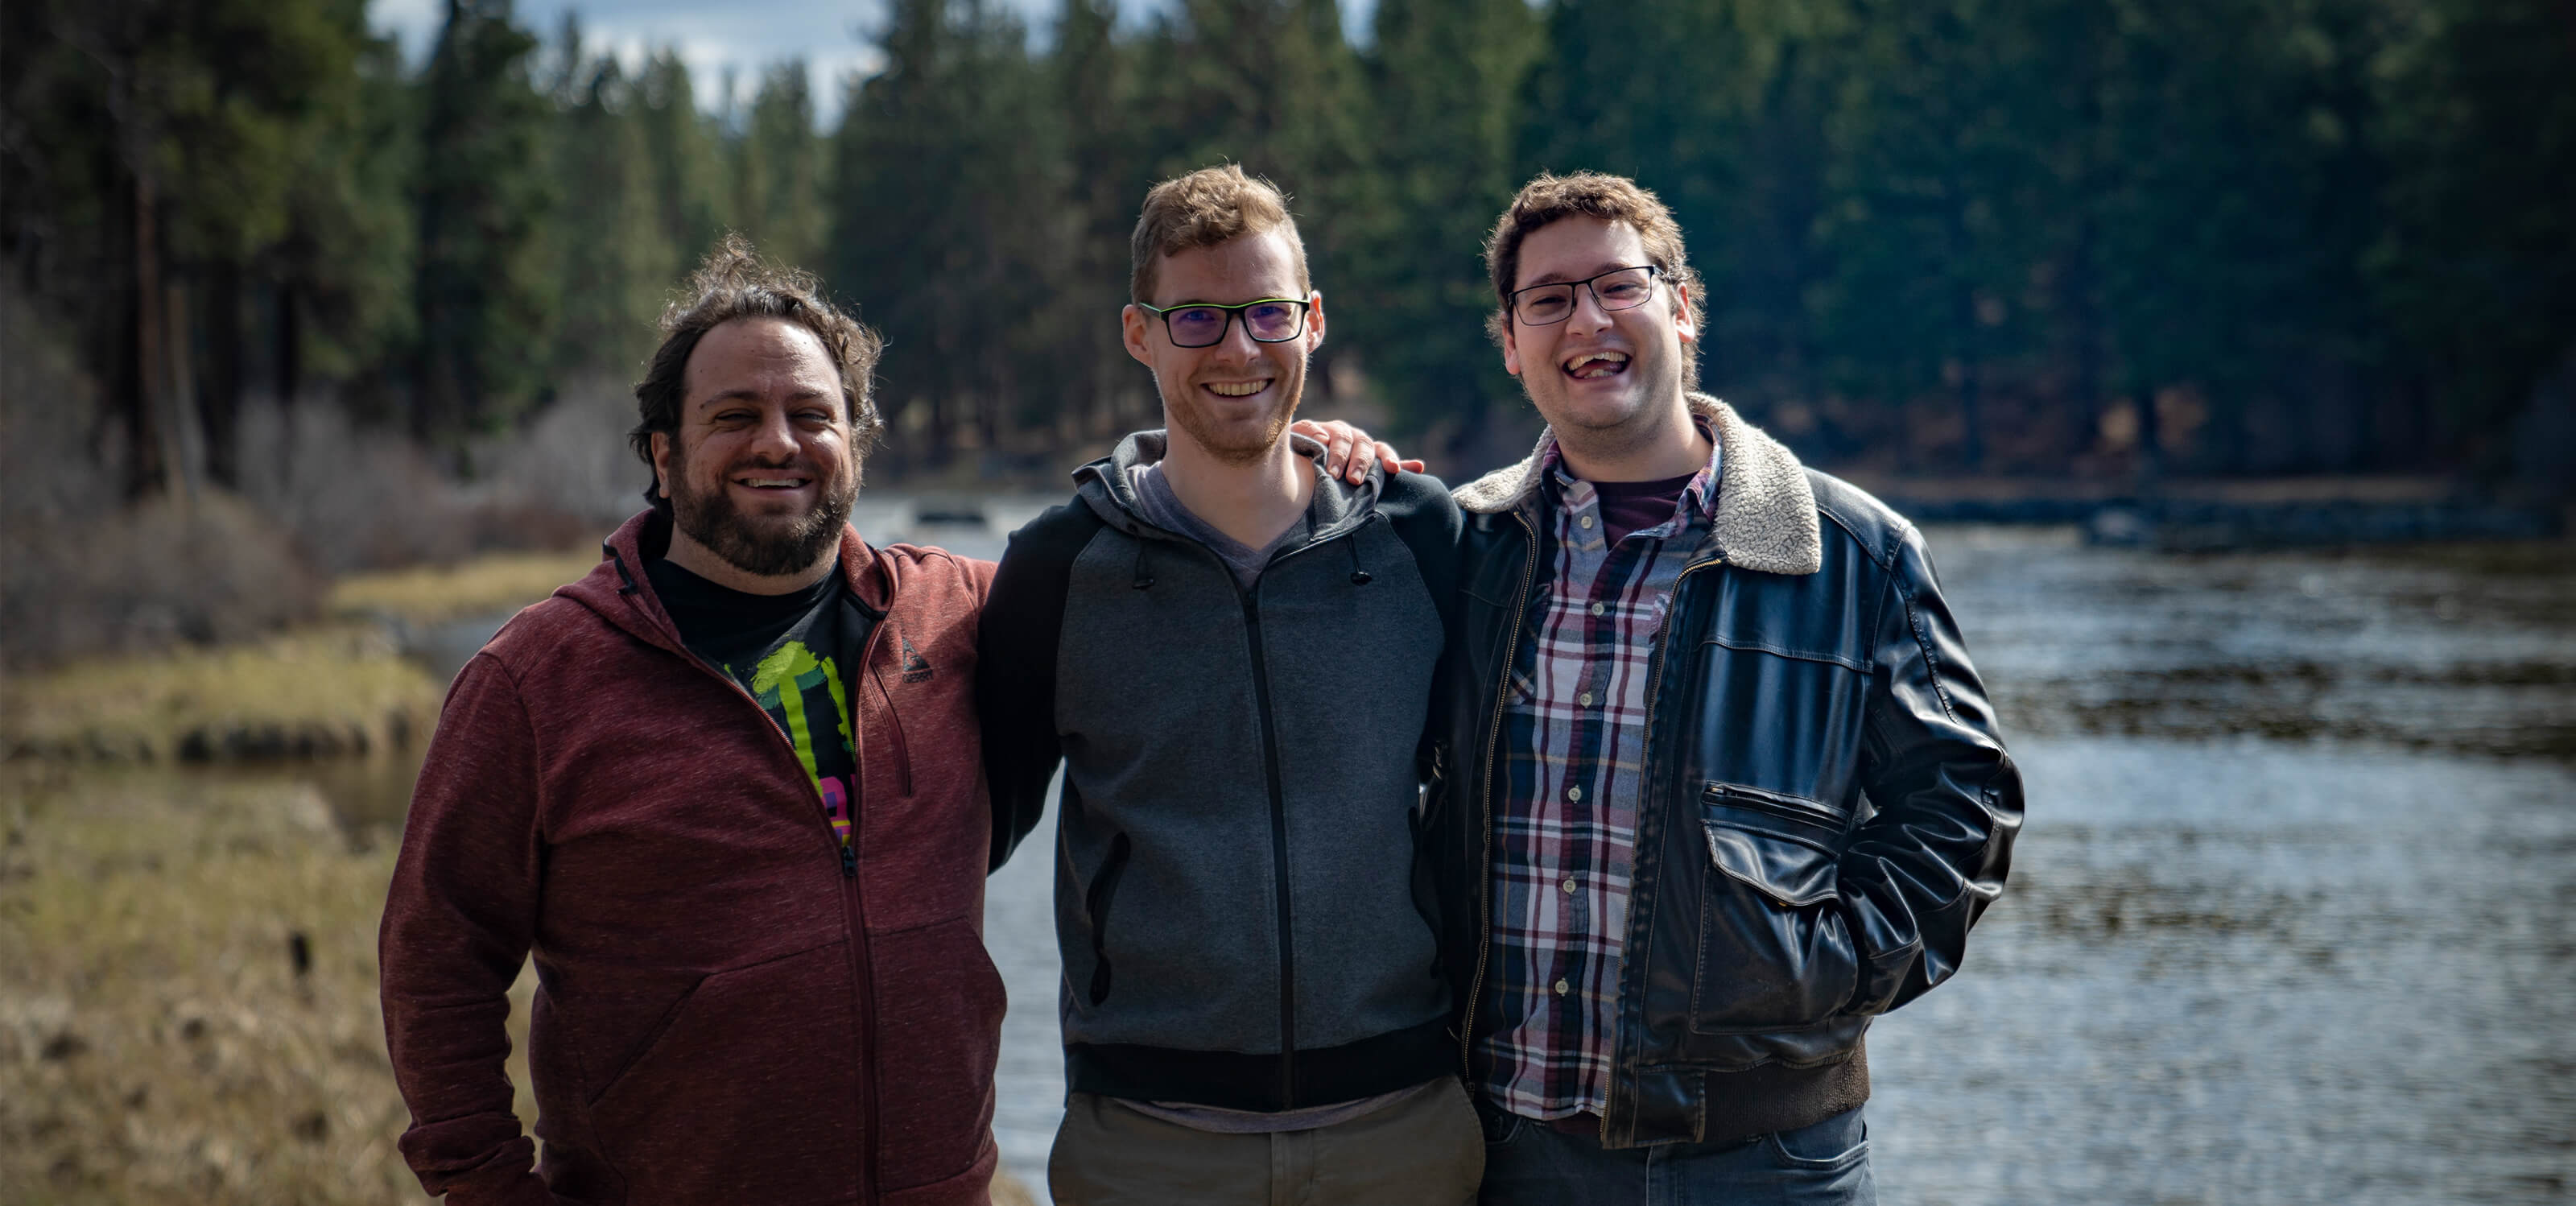 Jacob Fieth, Geoffry Hammon, and Sawyer Paradise pose on the Deschutes River near SIE Bend Studio's offices.